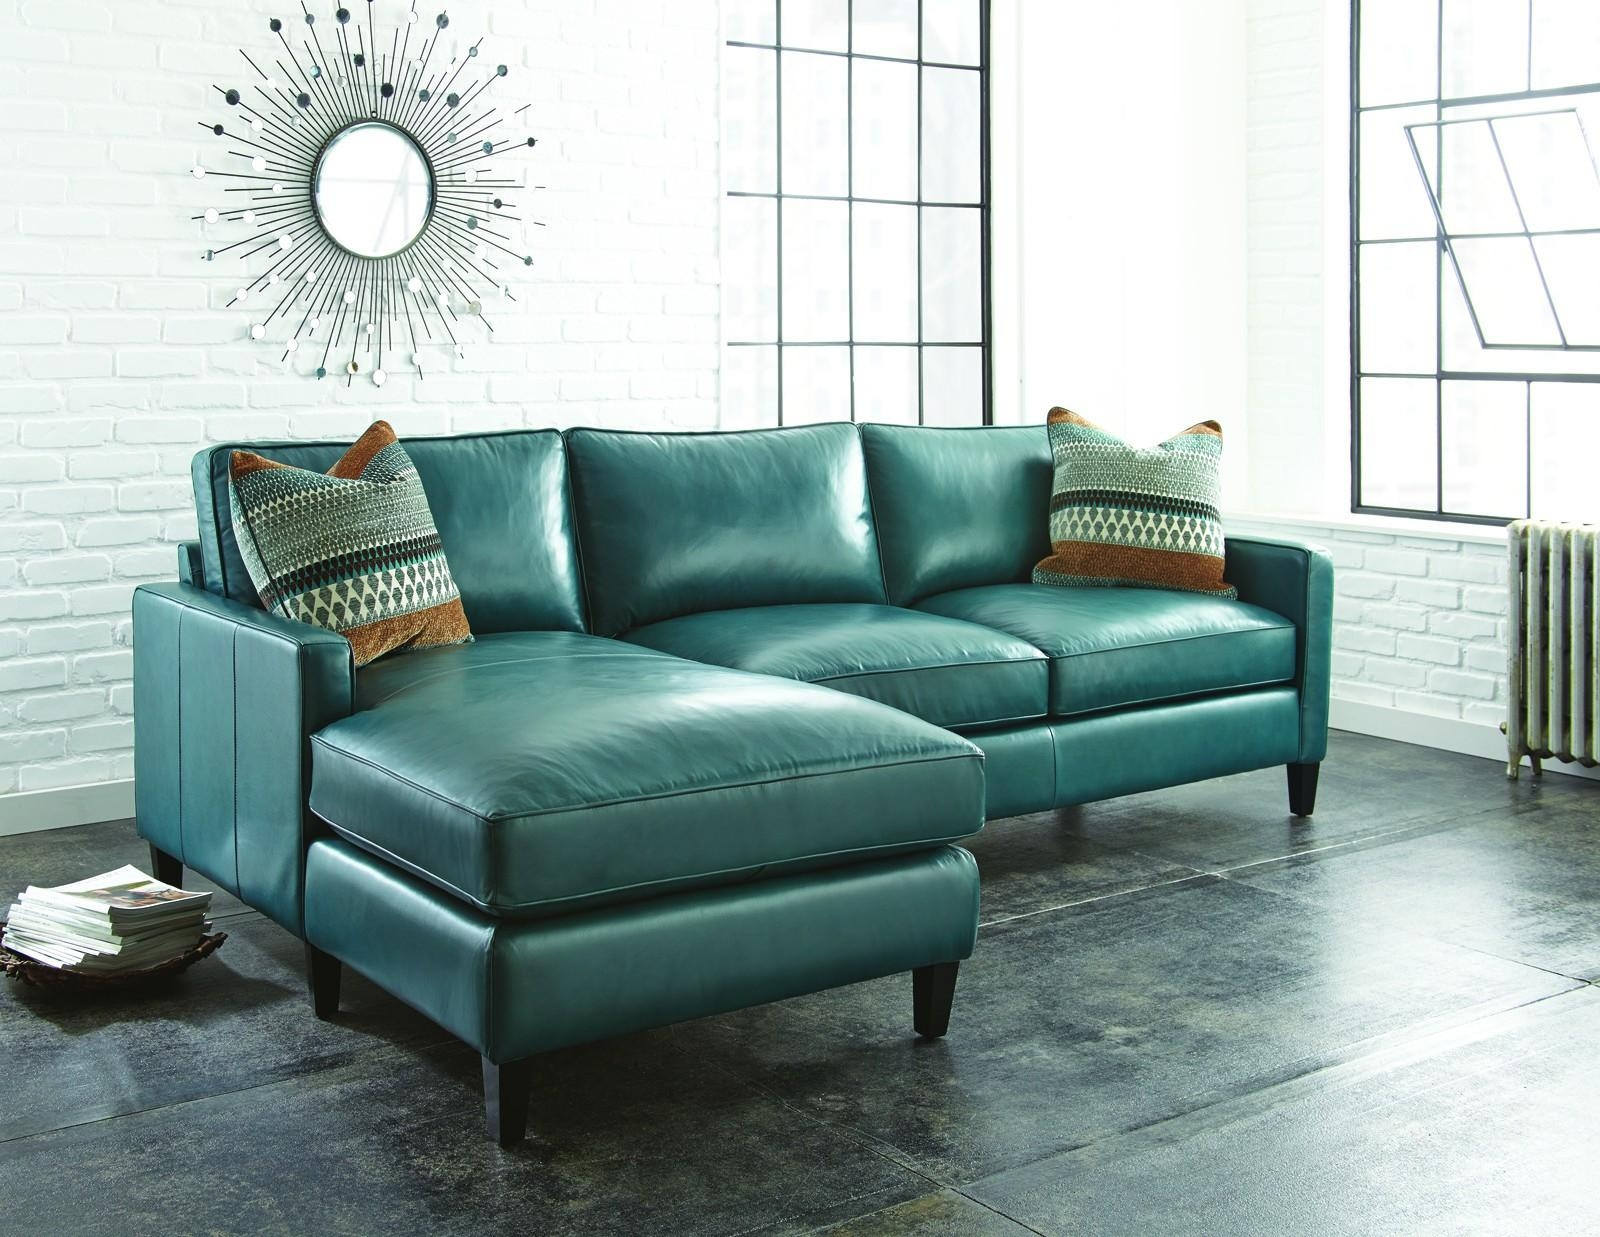 12 Green Leather Sectional Sofa | Carehouse Throughout Media Sofa Sectionals (Image 1 of 20)